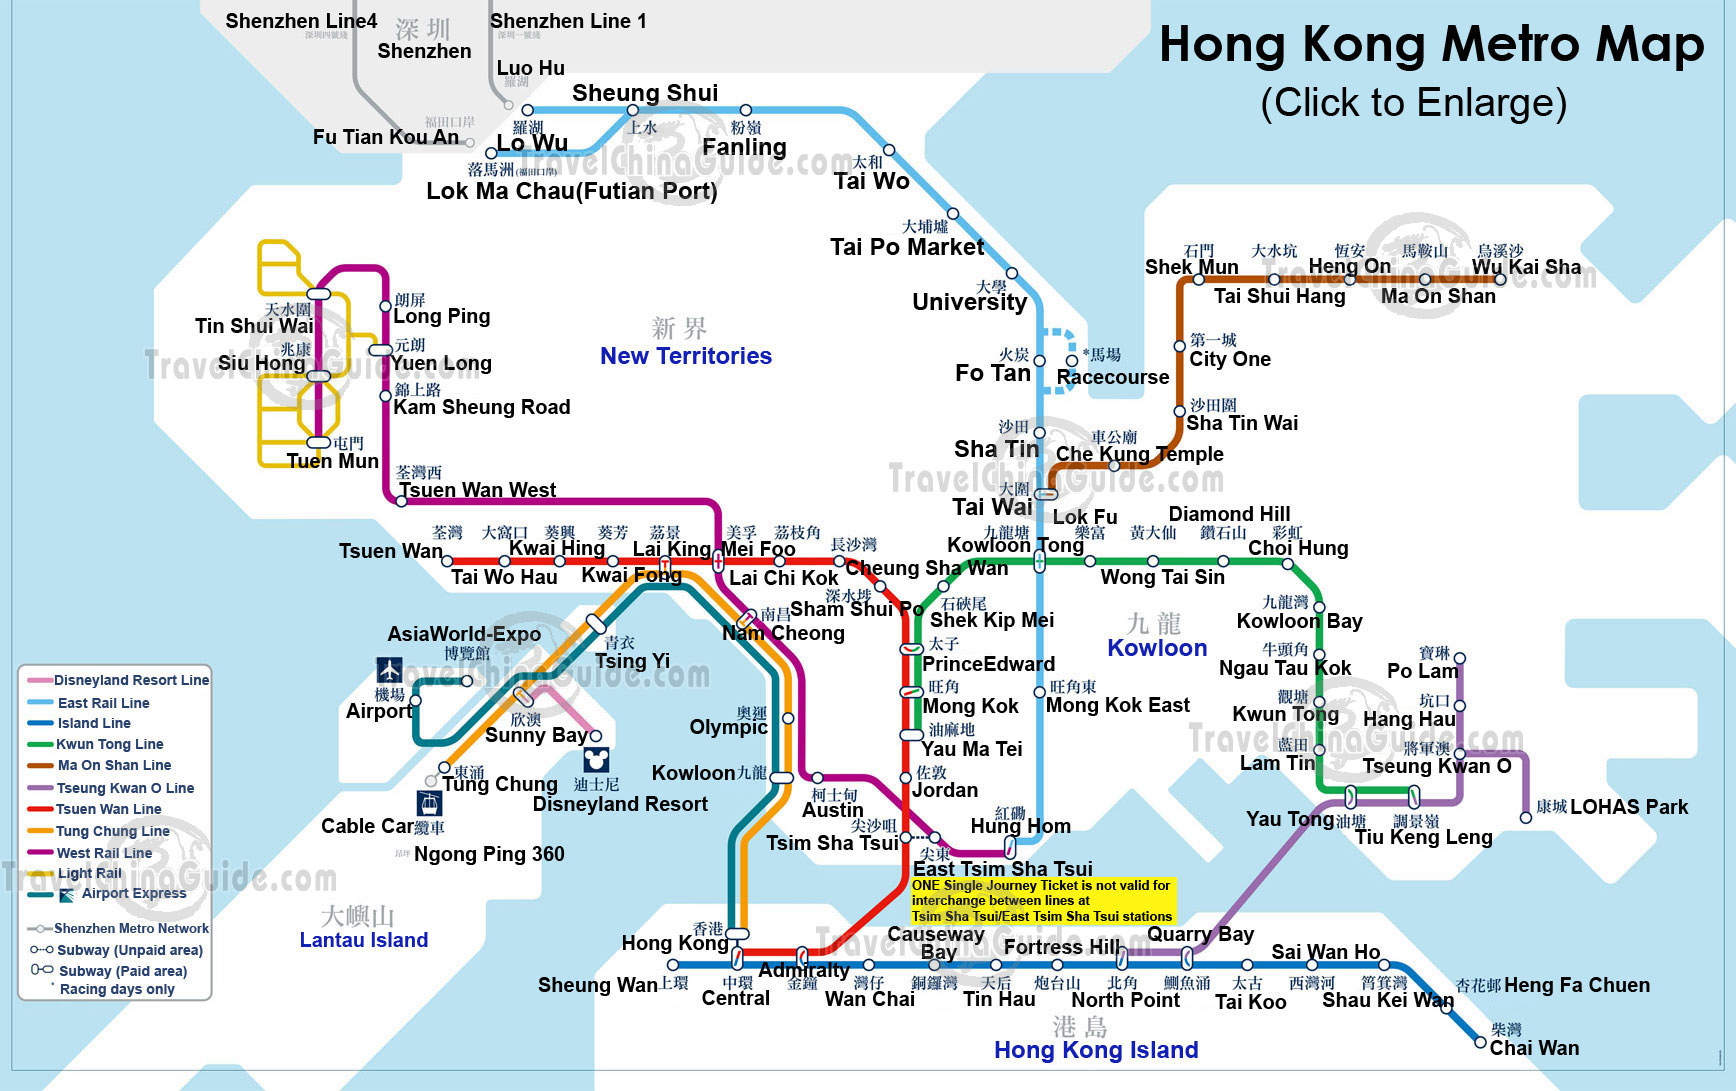 Hong Kong MTR train / rail map